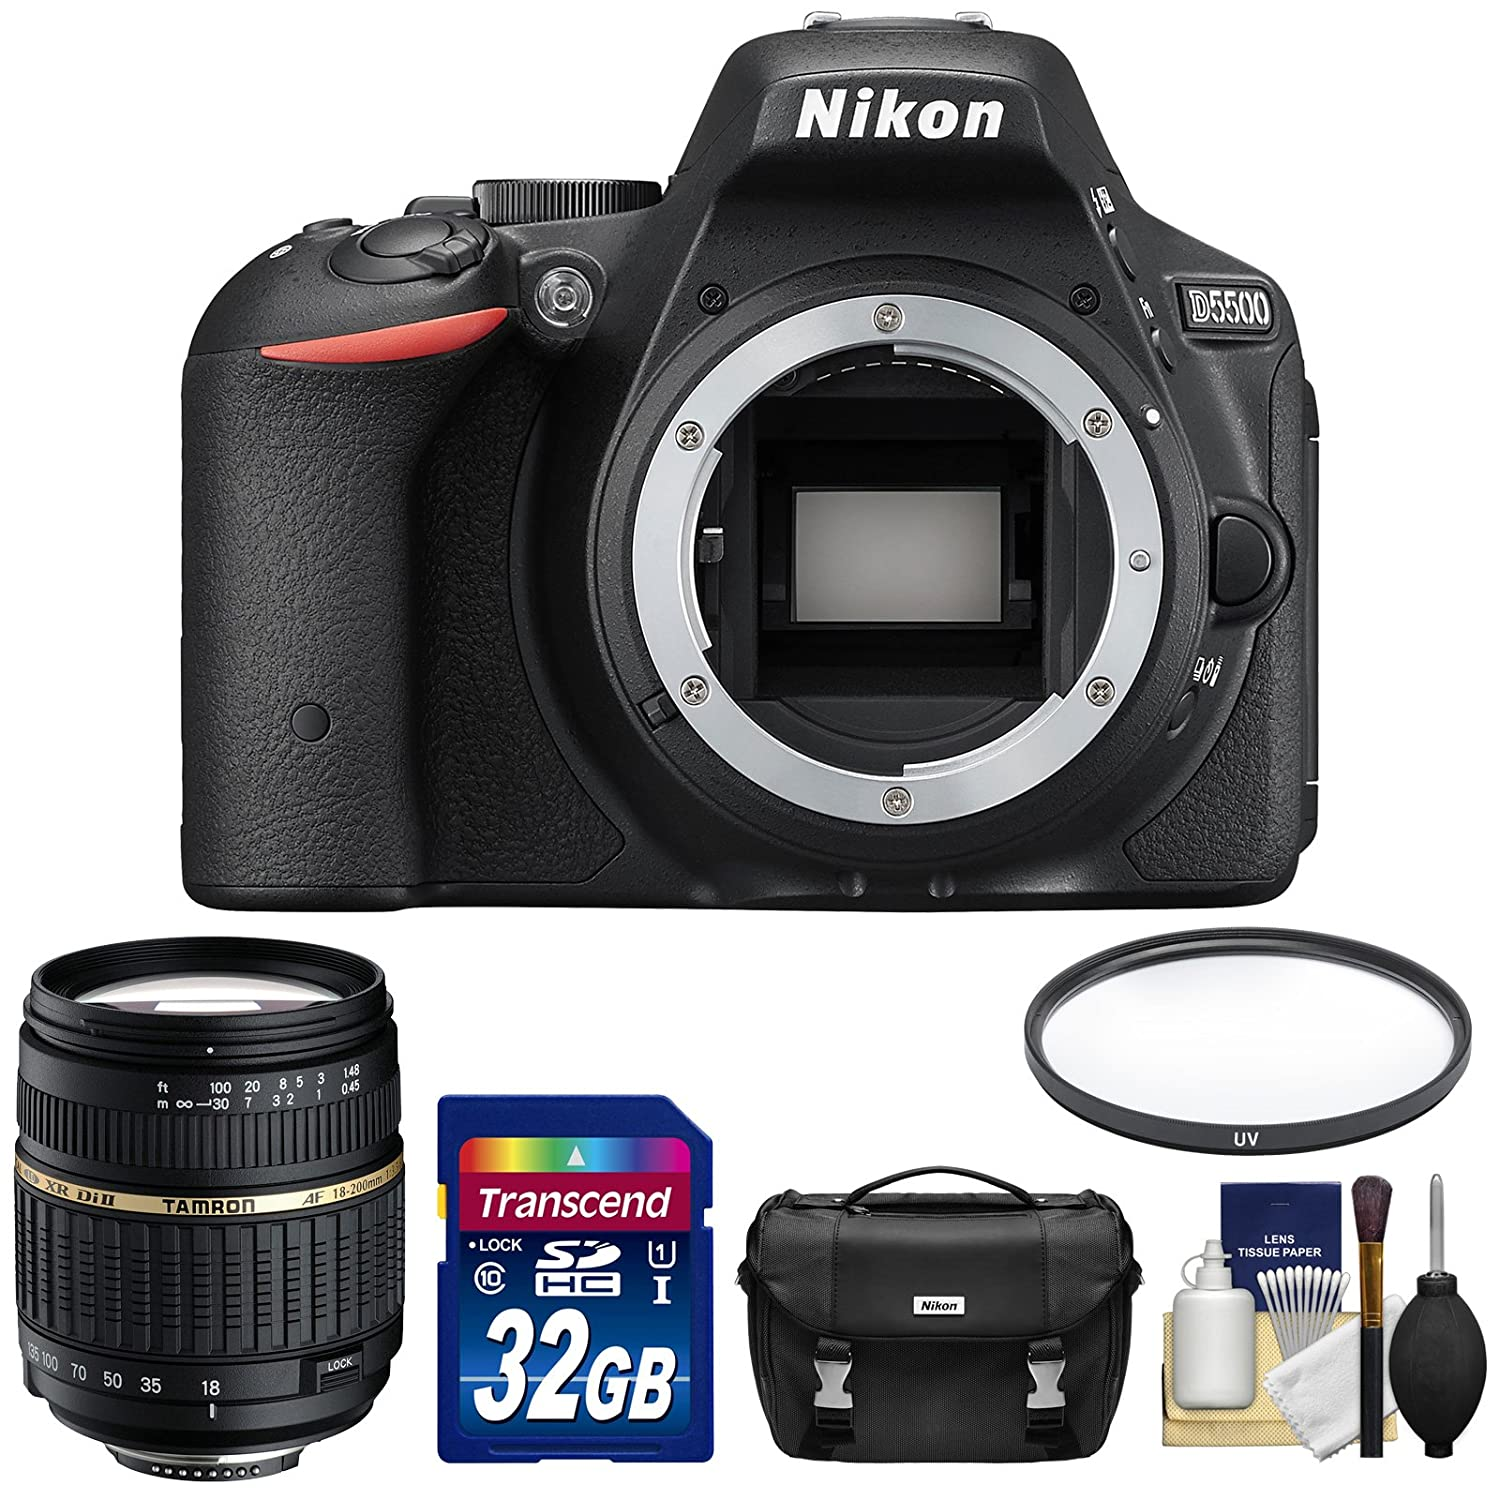 Nikon D5500 DSLR Camera with 18-200mm Lens + 32GB Card + Case Kit (Certified Refurbished)